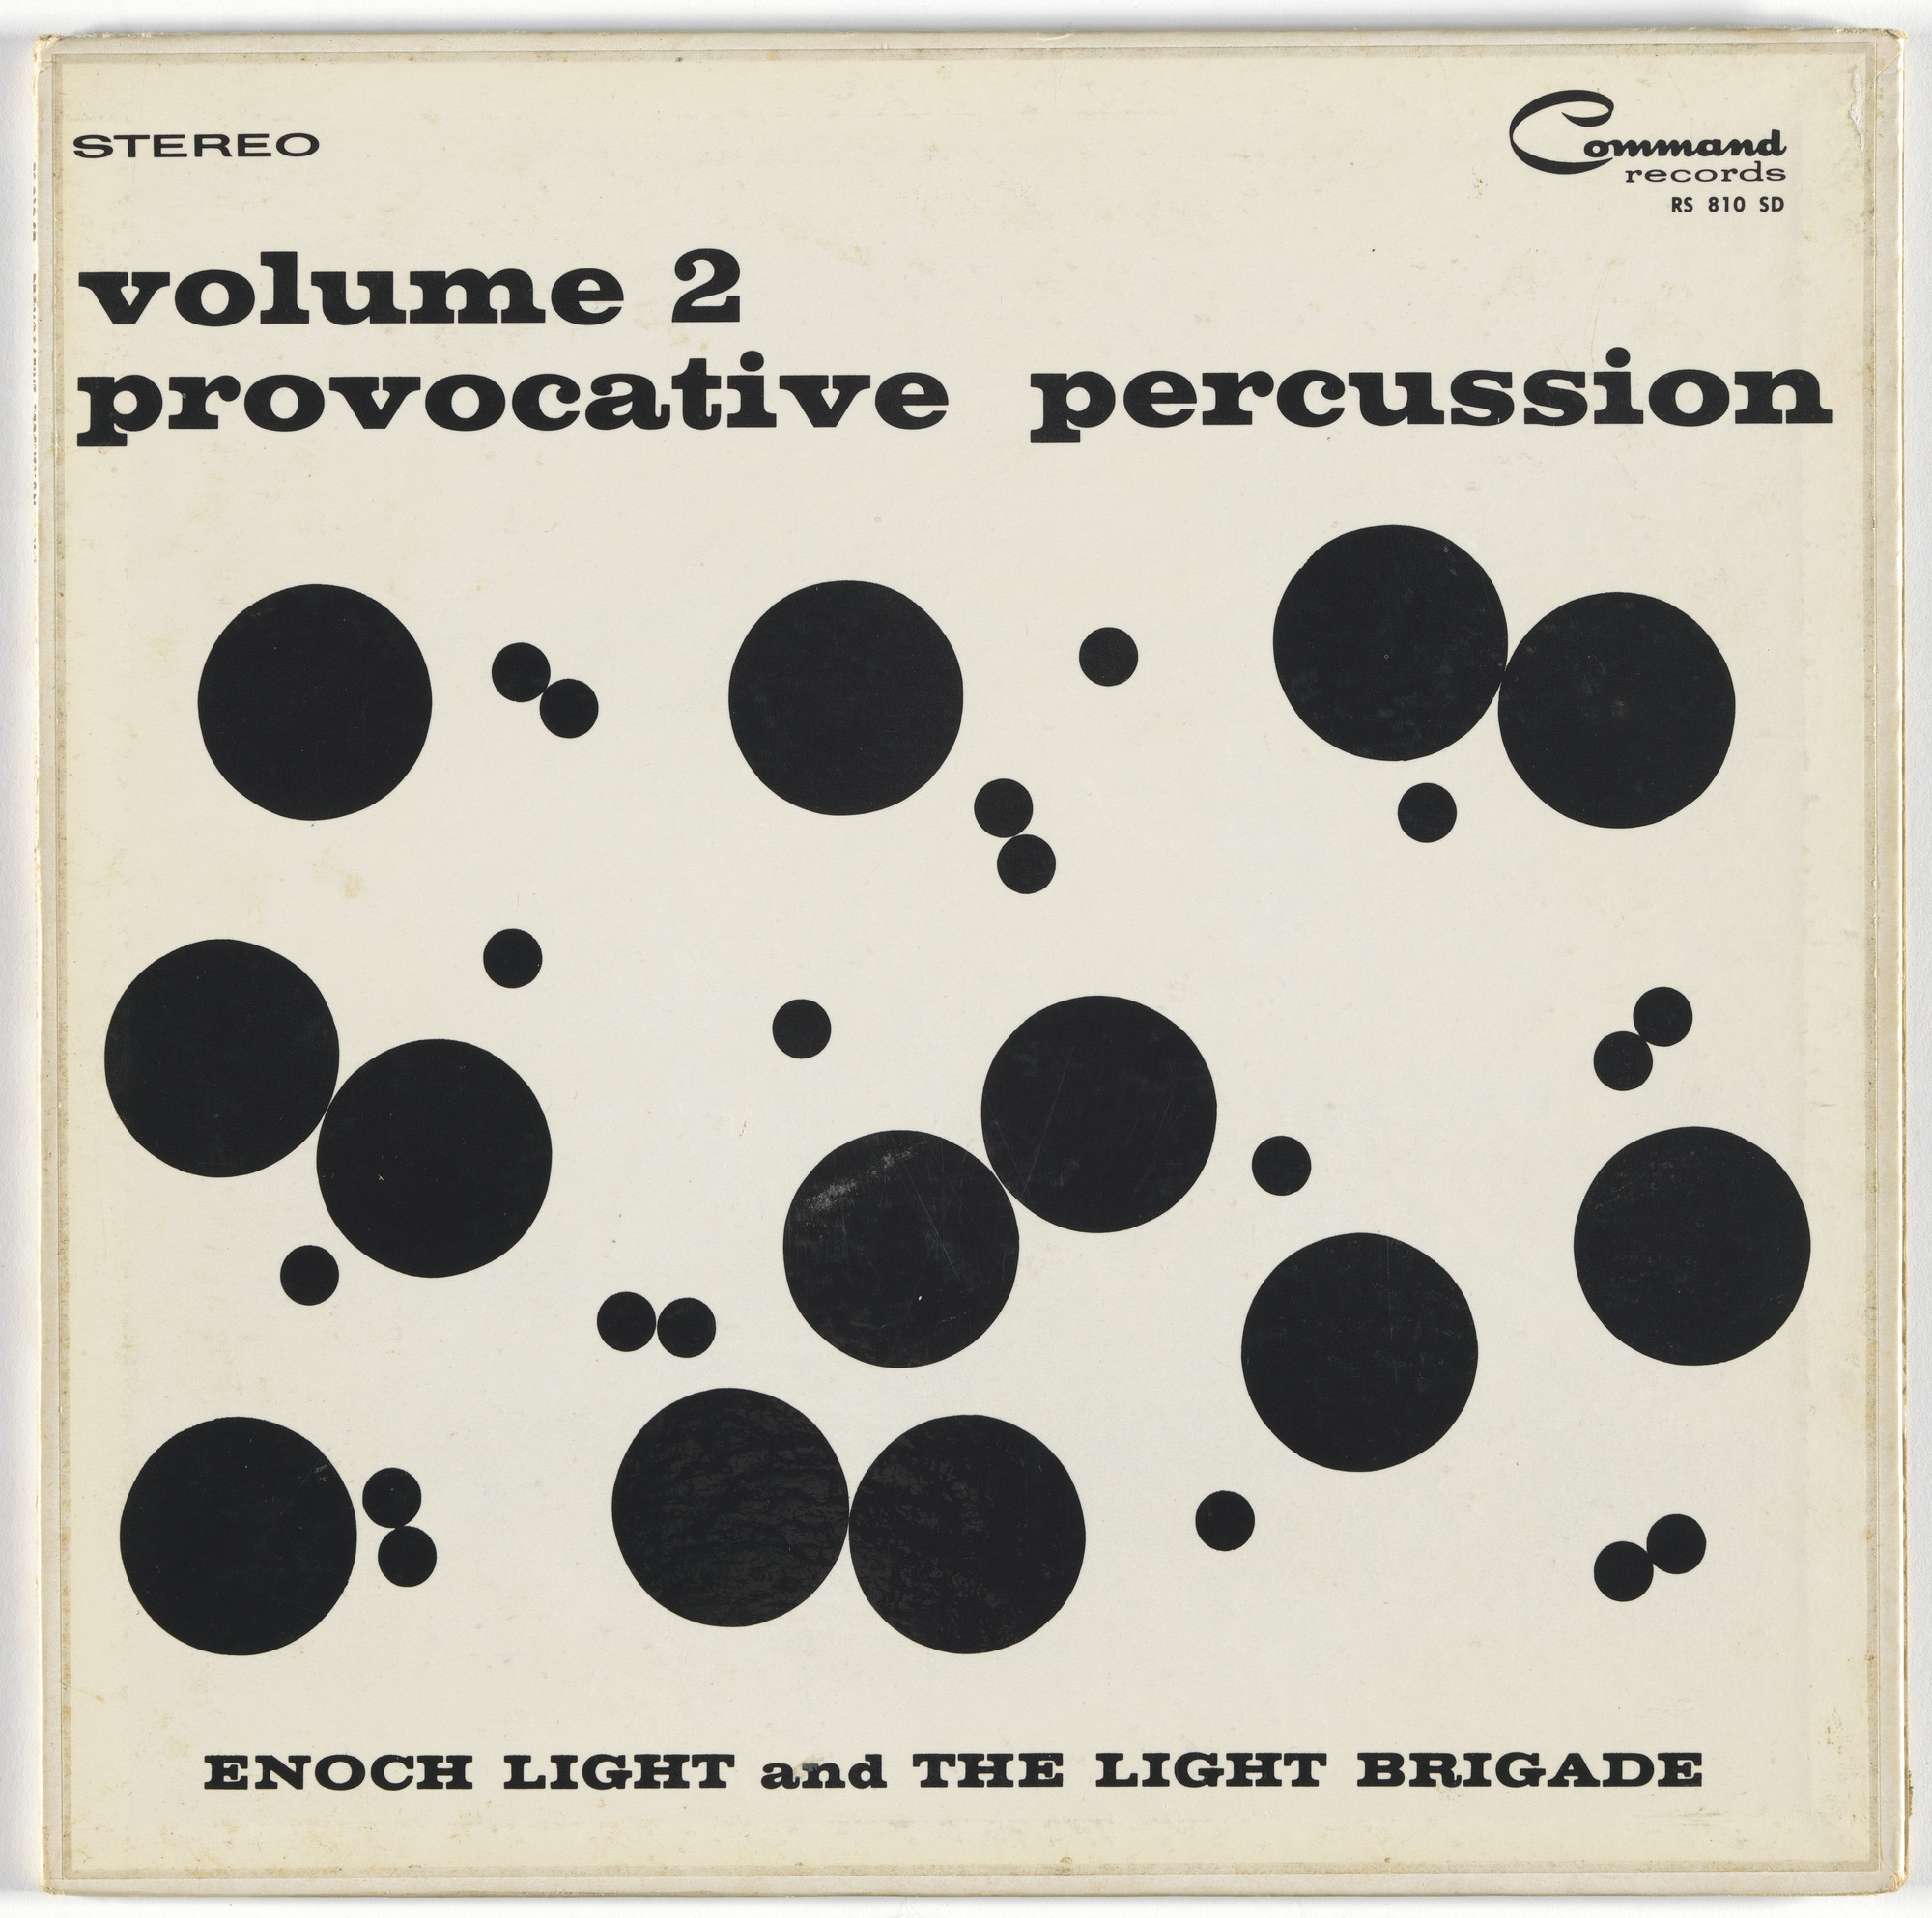 Josef Albers, Charles E. Murphy, Command Records. Album cover for Enoch Light & the Light Brigade, Provocative Percussion vol. 2. 1960